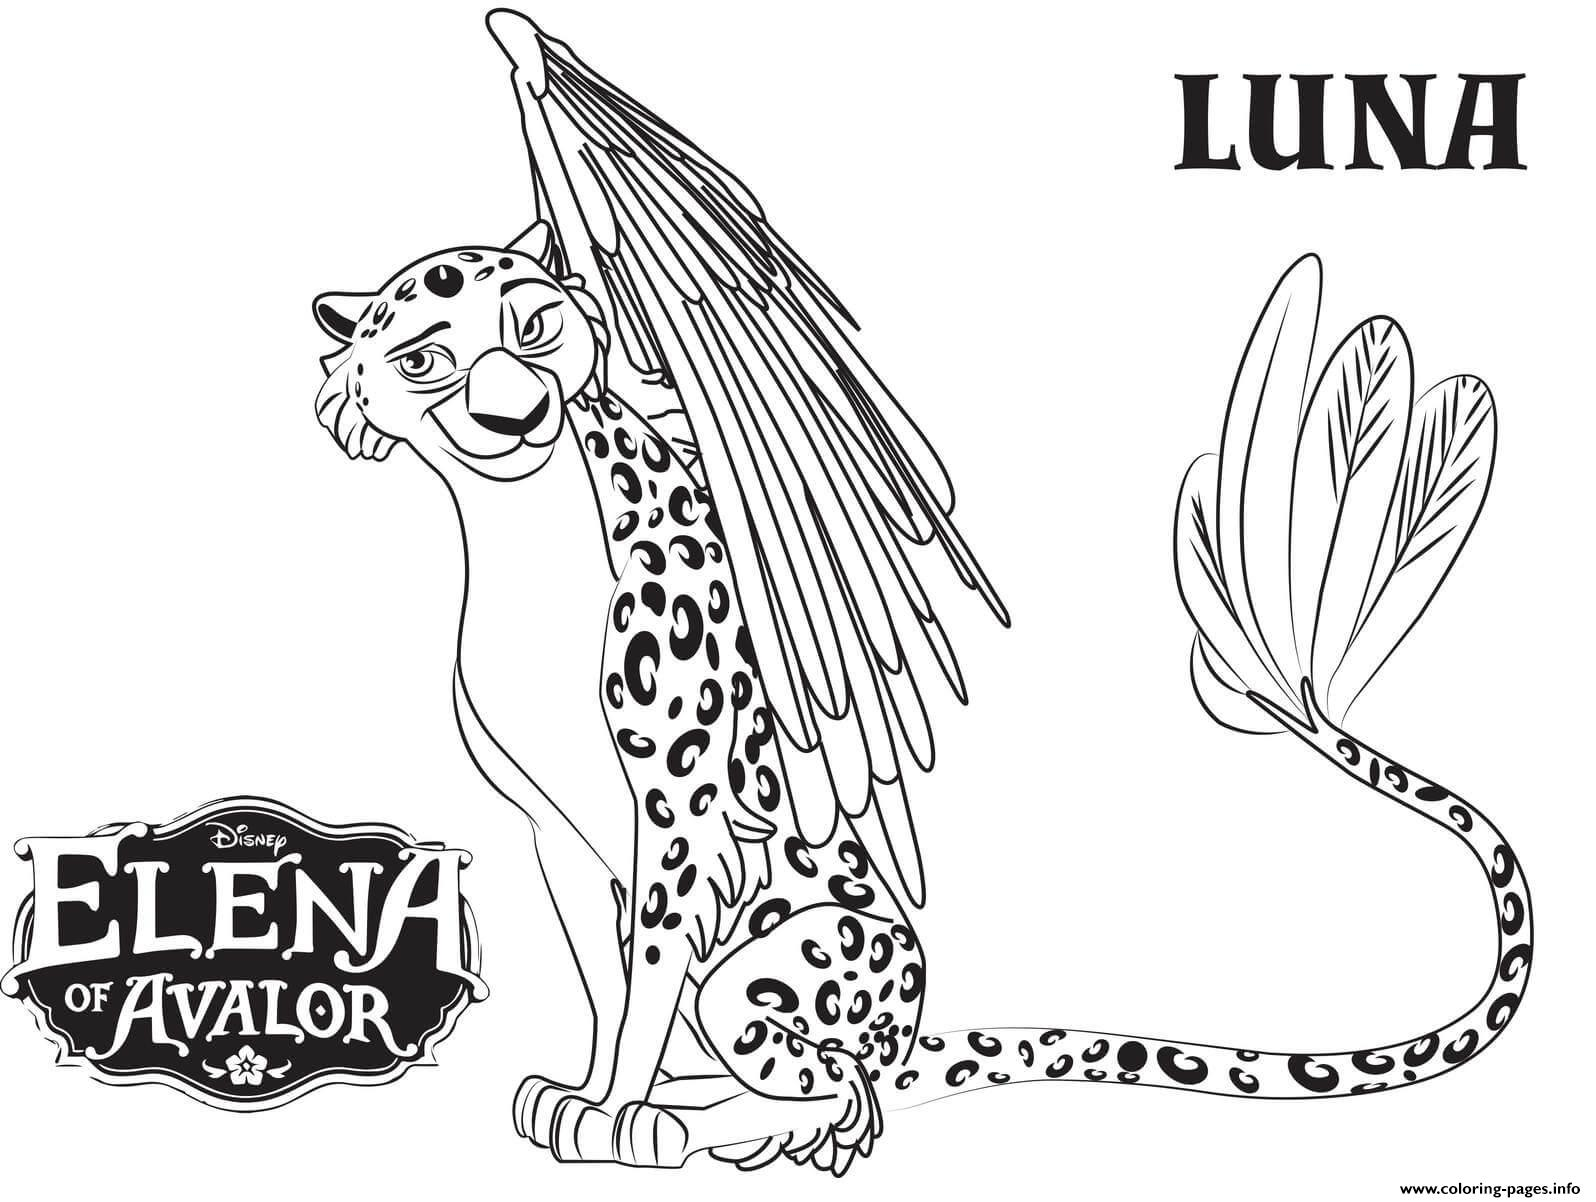 Elena Of Avalor Luna Coloring Pages Printable